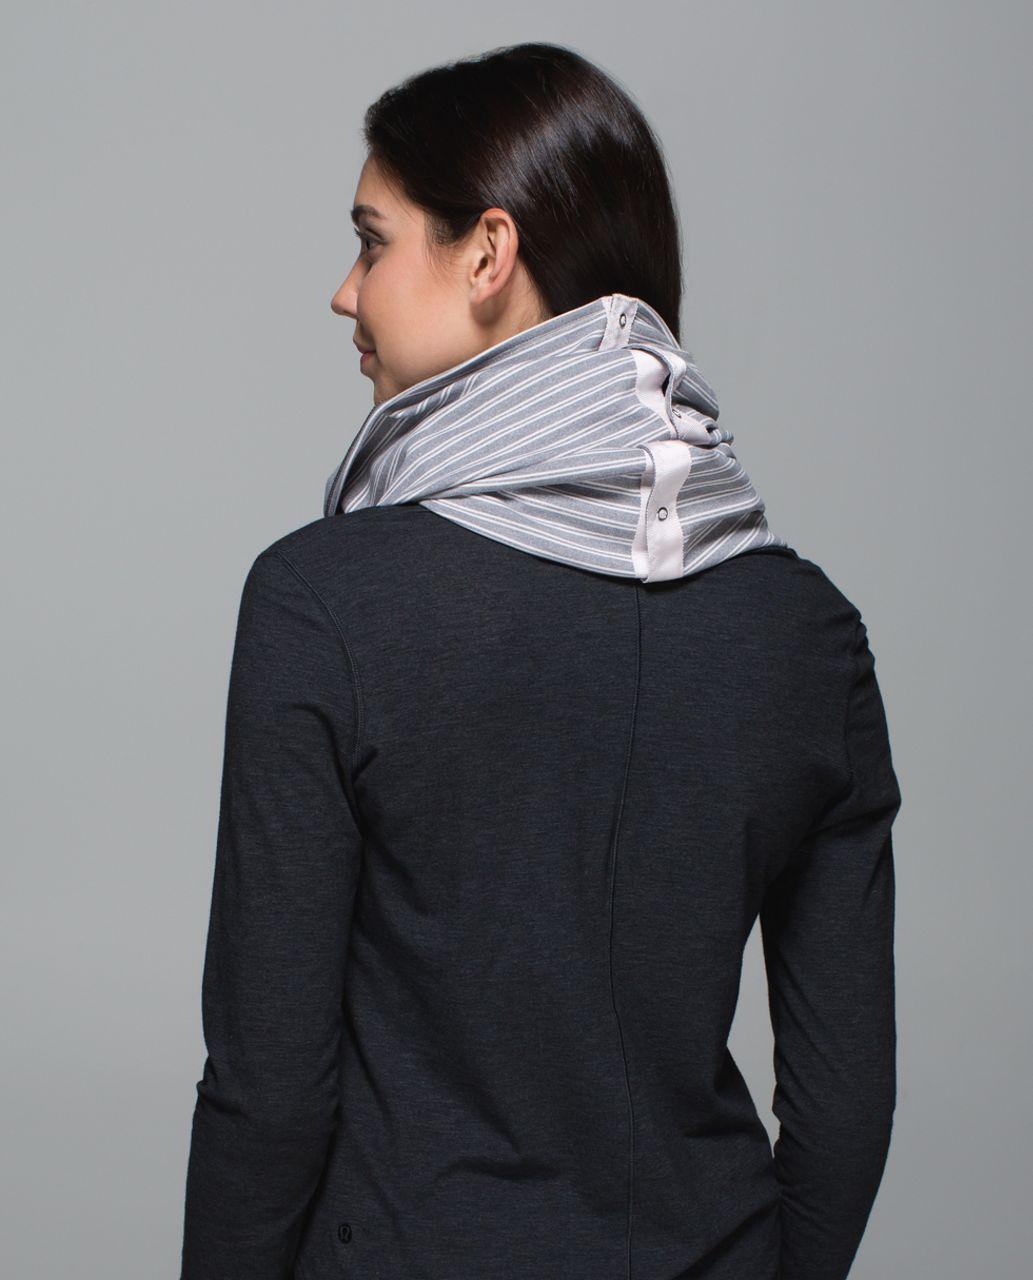 Lululemon Vinyasa Scarf *Rulu - Double Trouble Stripe Neutral Blush Heathered Slate / Heathered Slate